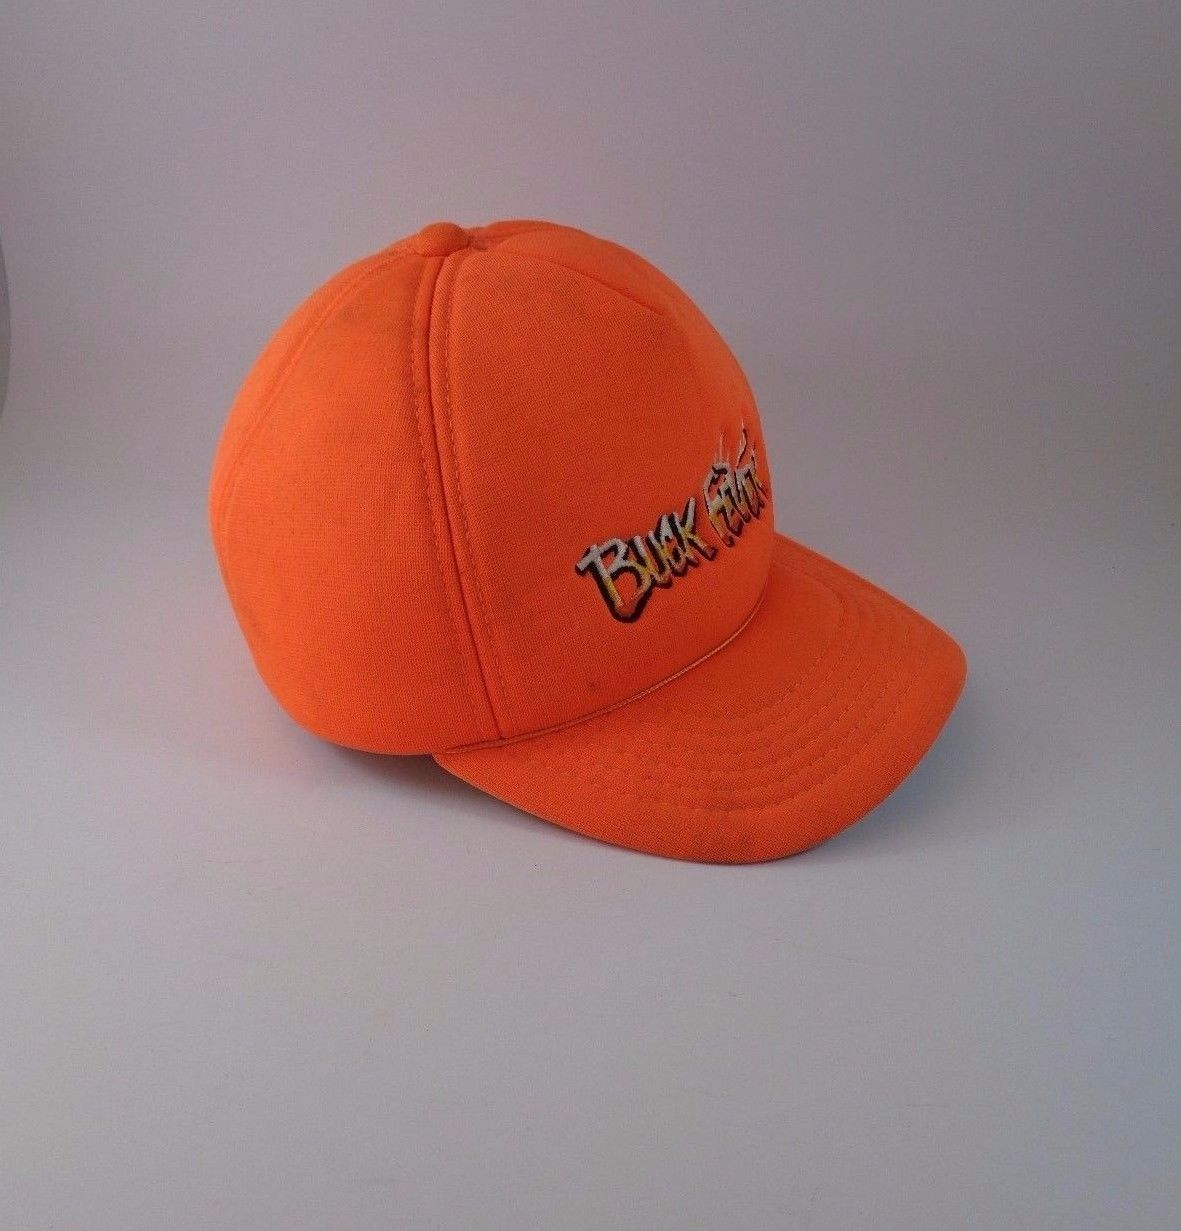 VTG BUCK FEVER HUNTING Embroidery Embroidered One Size Hat Baseball Cap Hunt